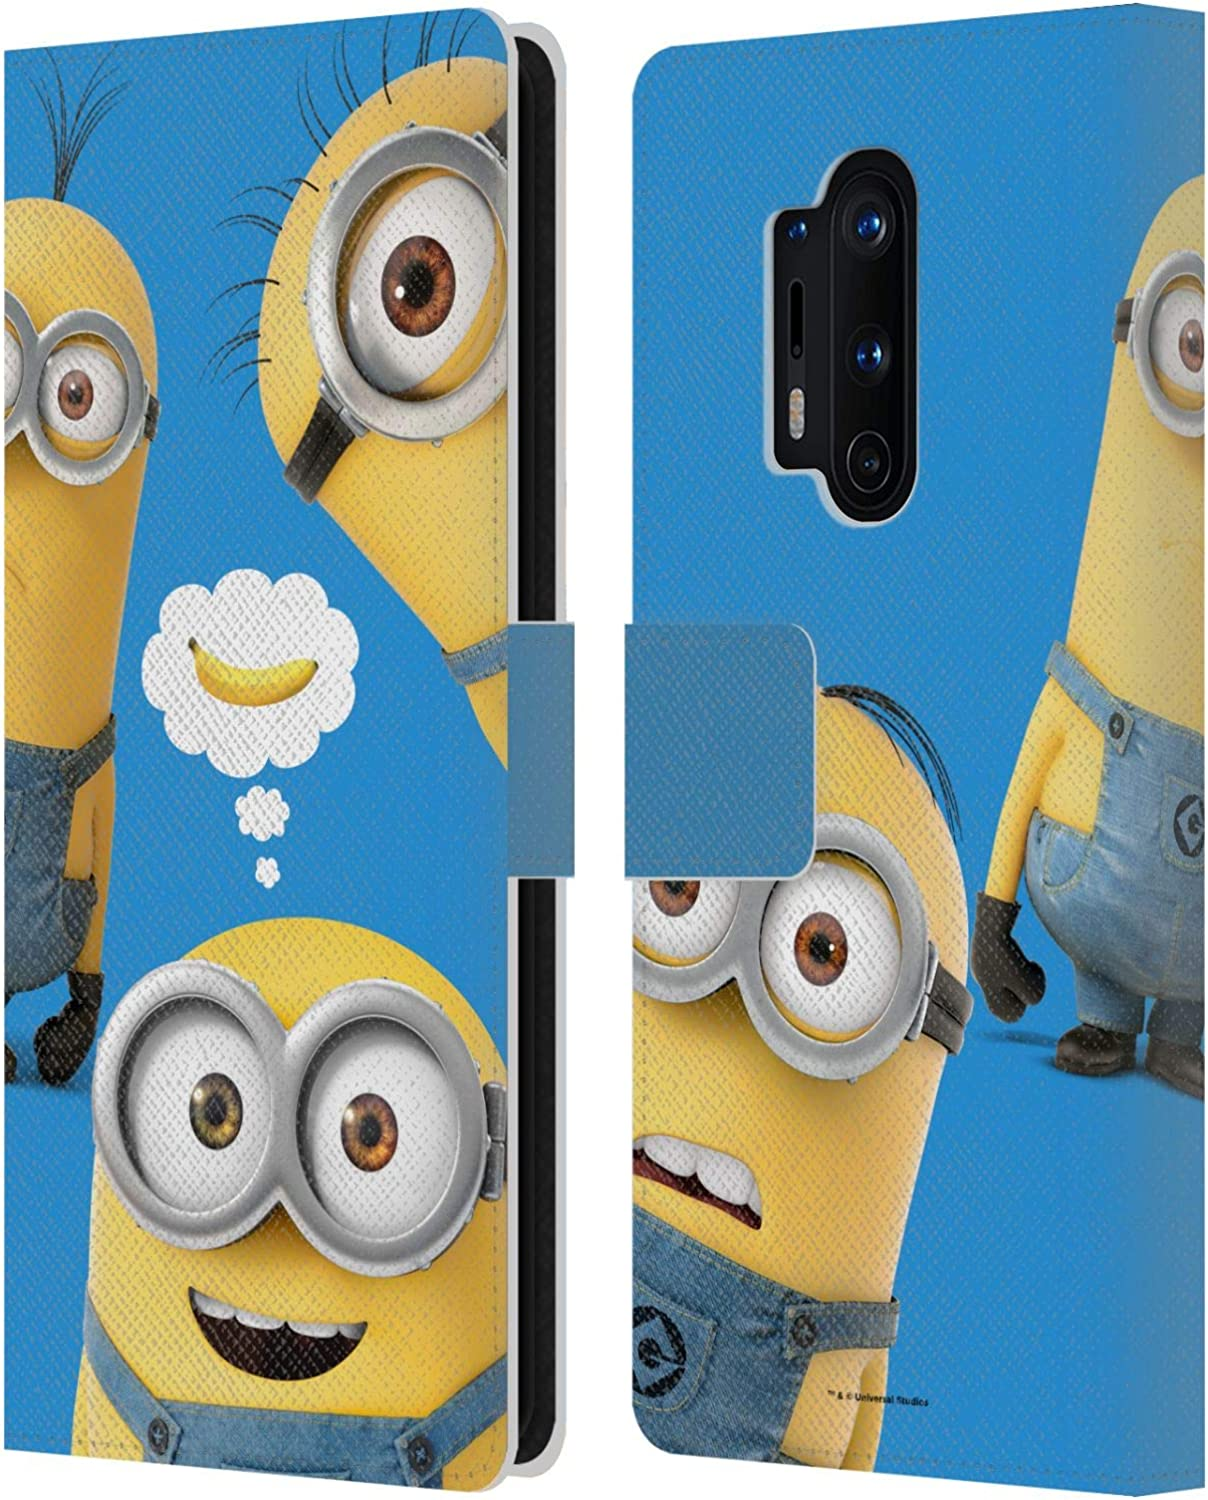 Official Despicable Me Bad Decisions Funny Minions Leather Book Wallet Case Cover Compatible For OnePlus 8 Pro